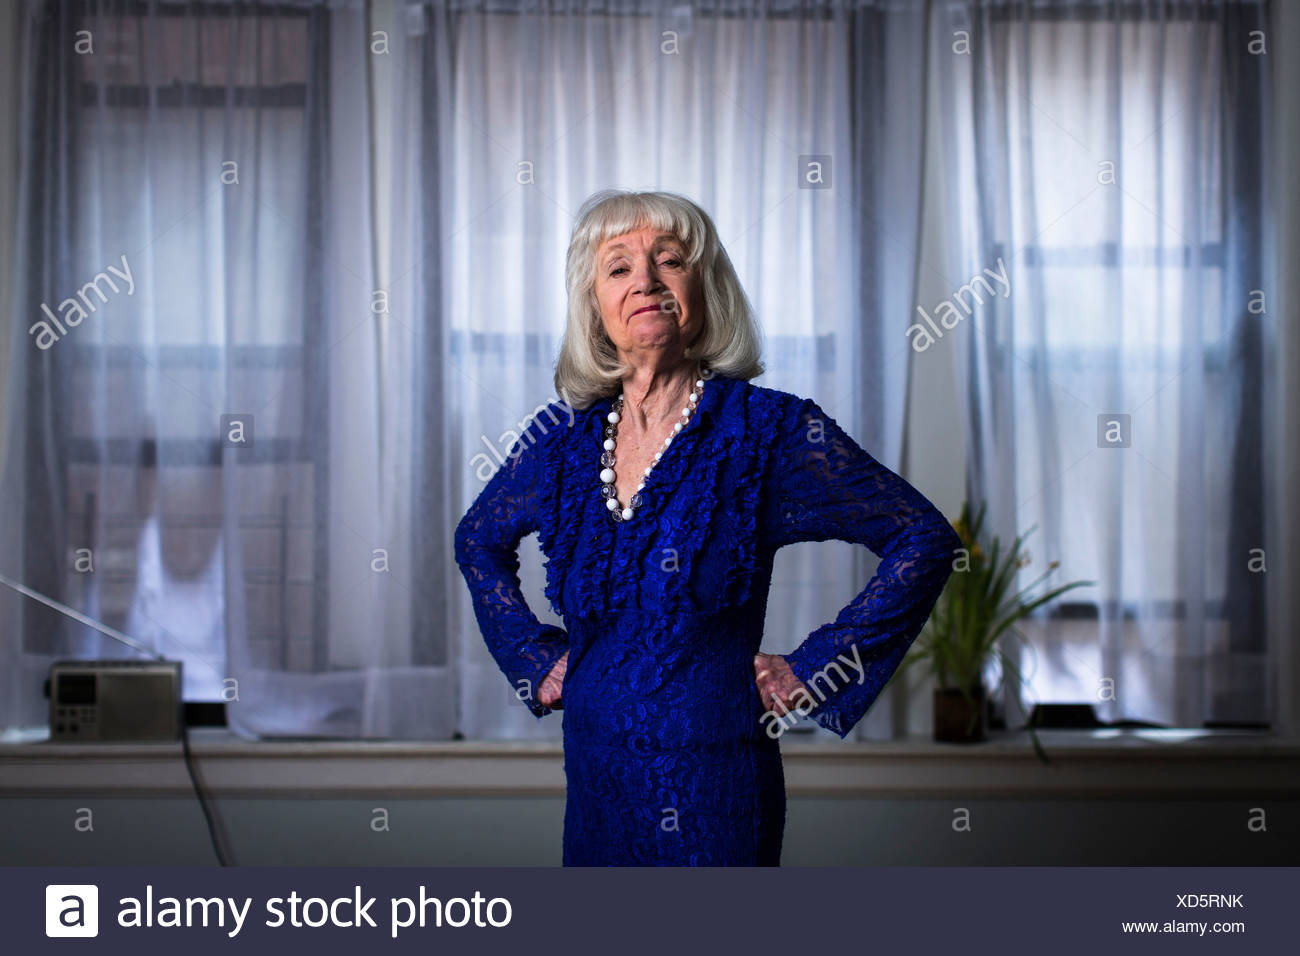 Senior woman in blue dress with hands on hips Photo Stock